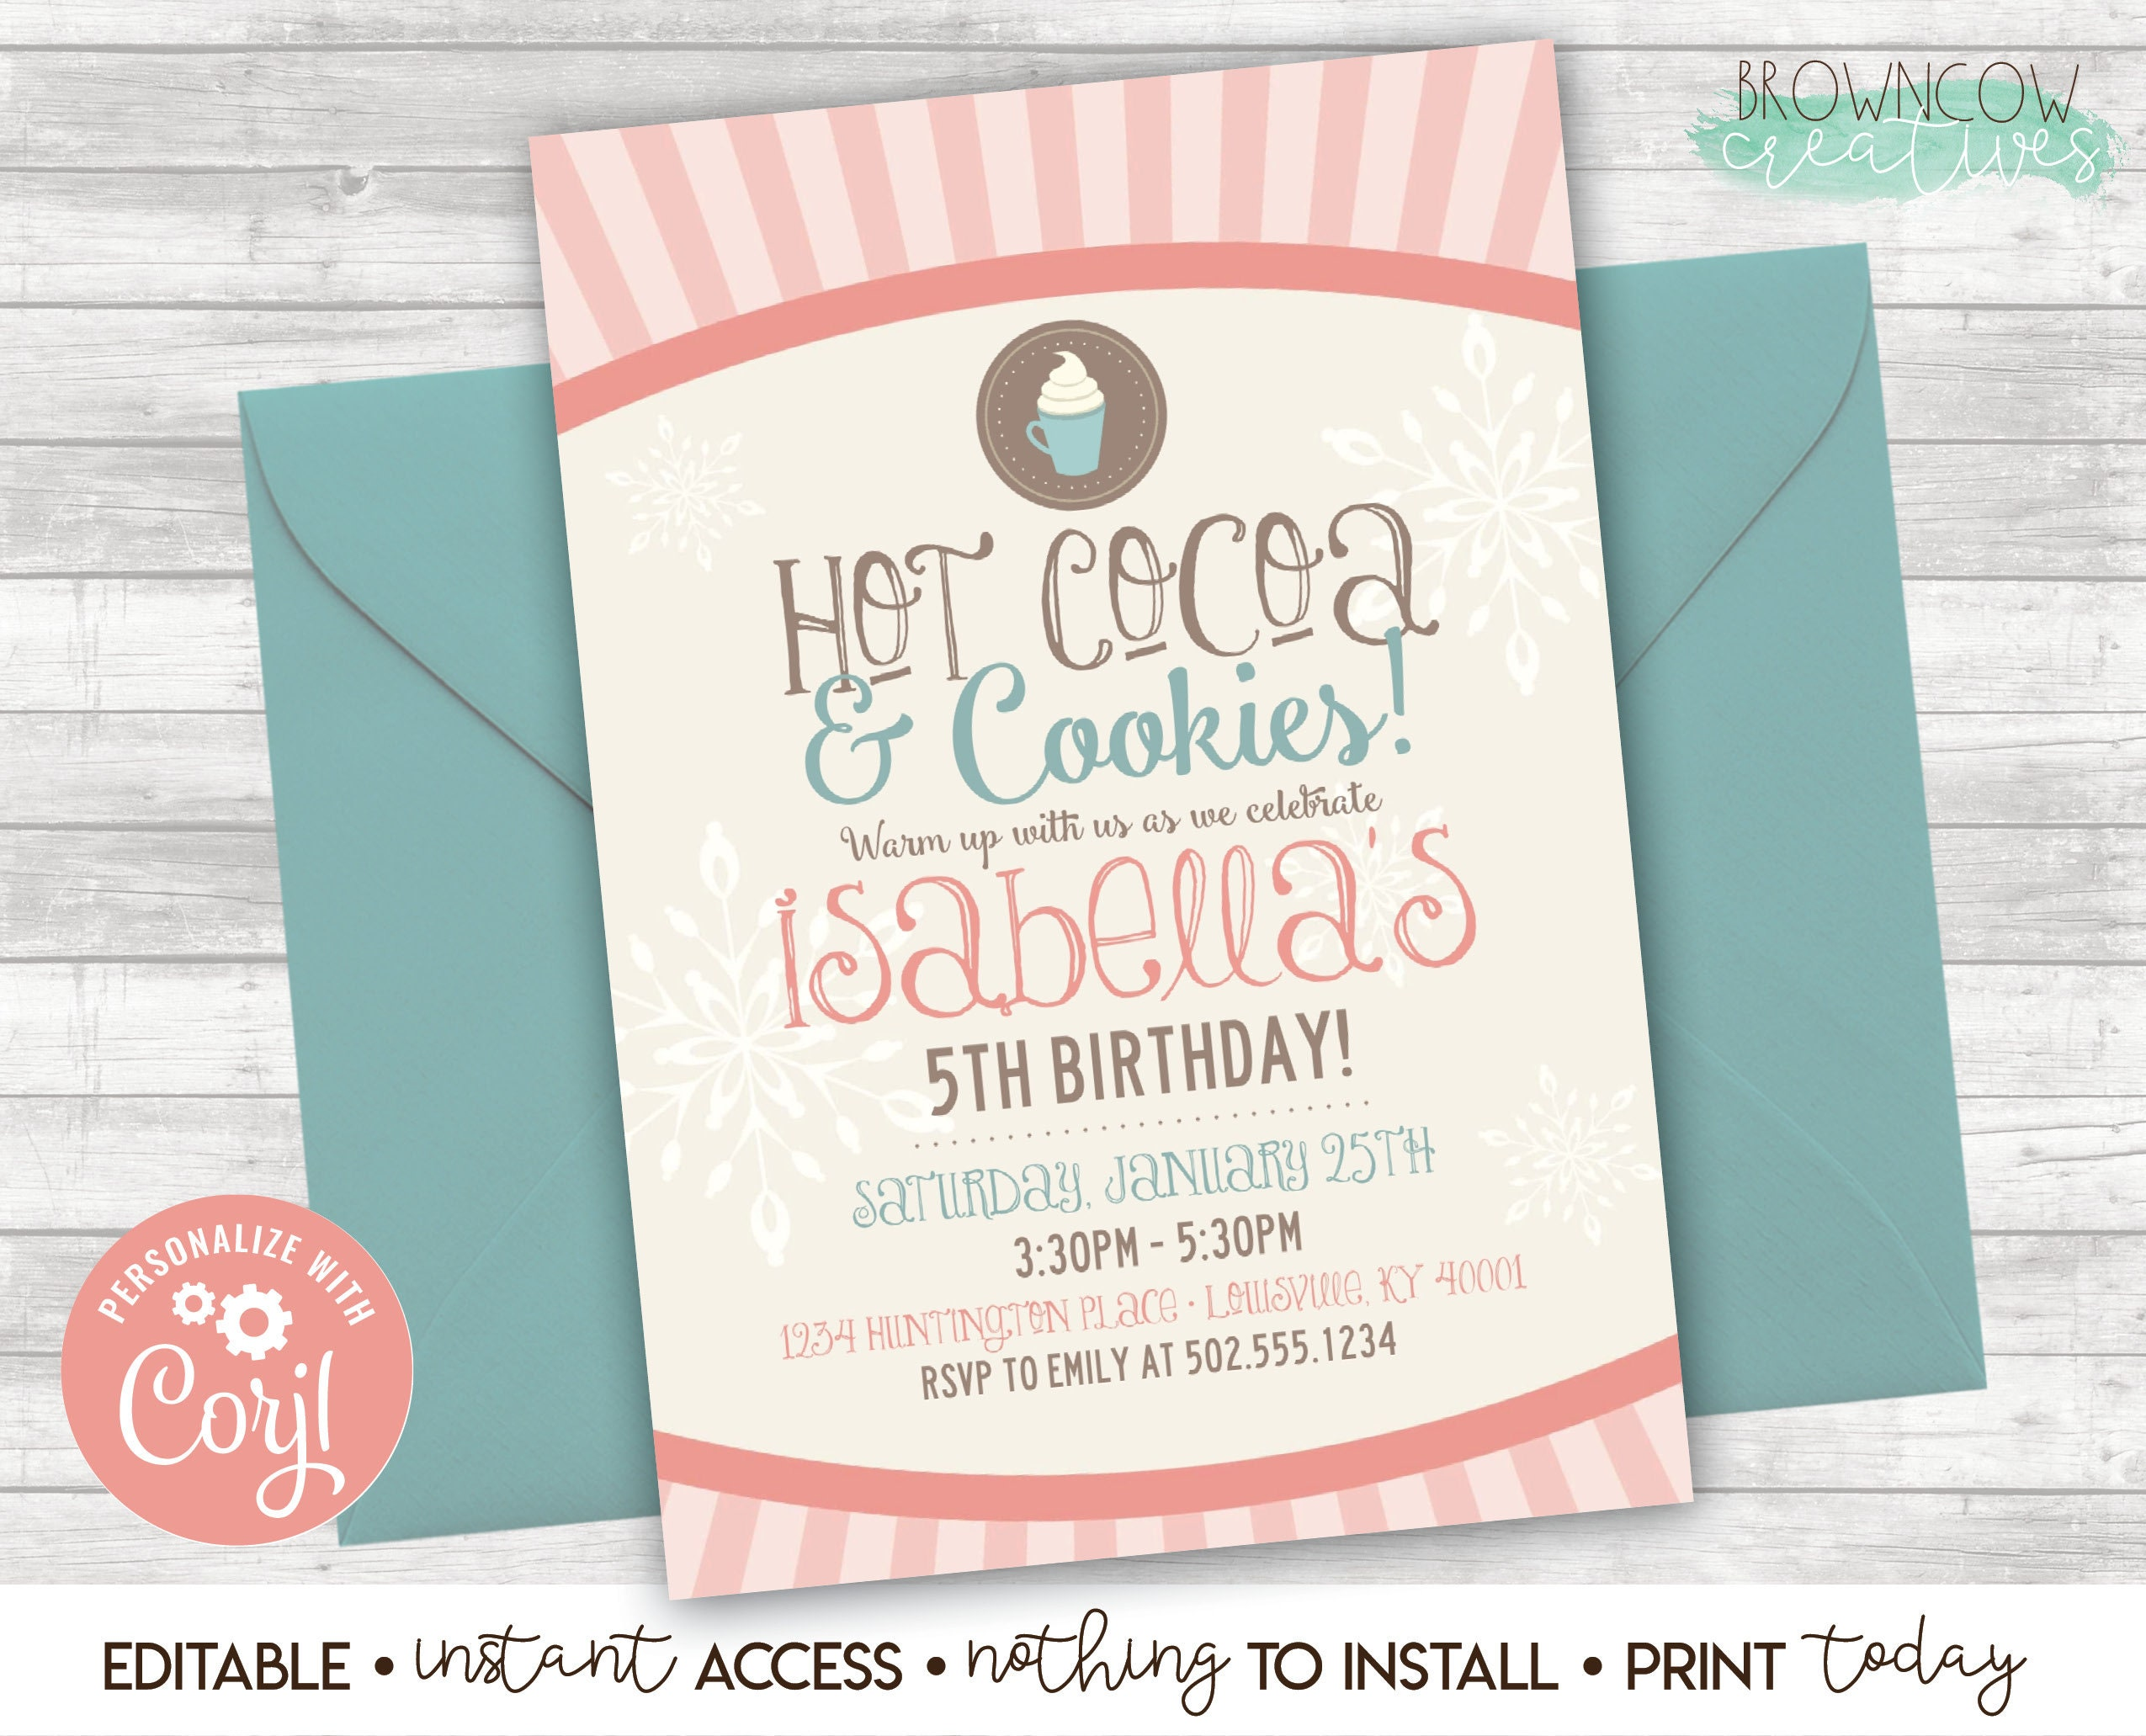 Hot Cocoa Cookies Invitation Winter Birthday Party Instant Etsy